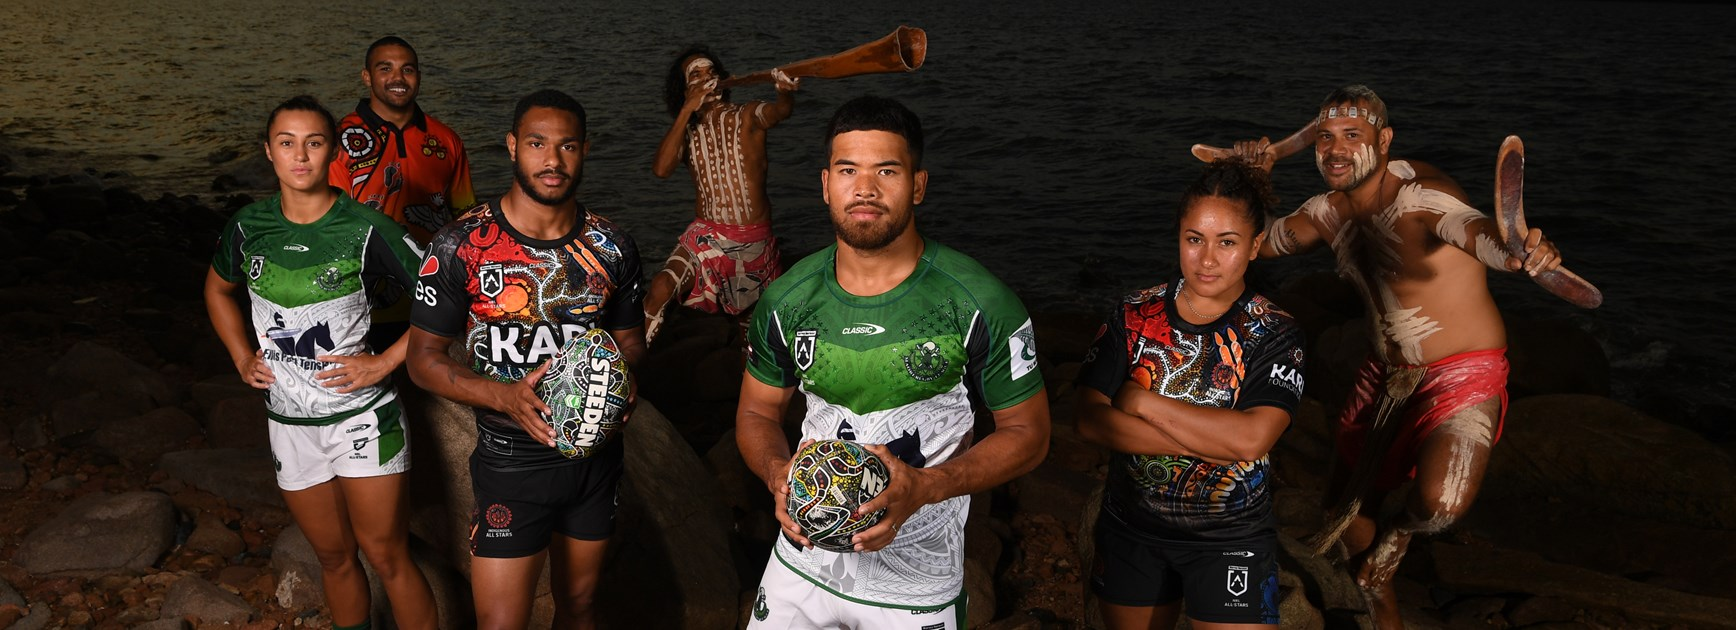 The men's and women's All Stars will clash in Townsville on February 20.